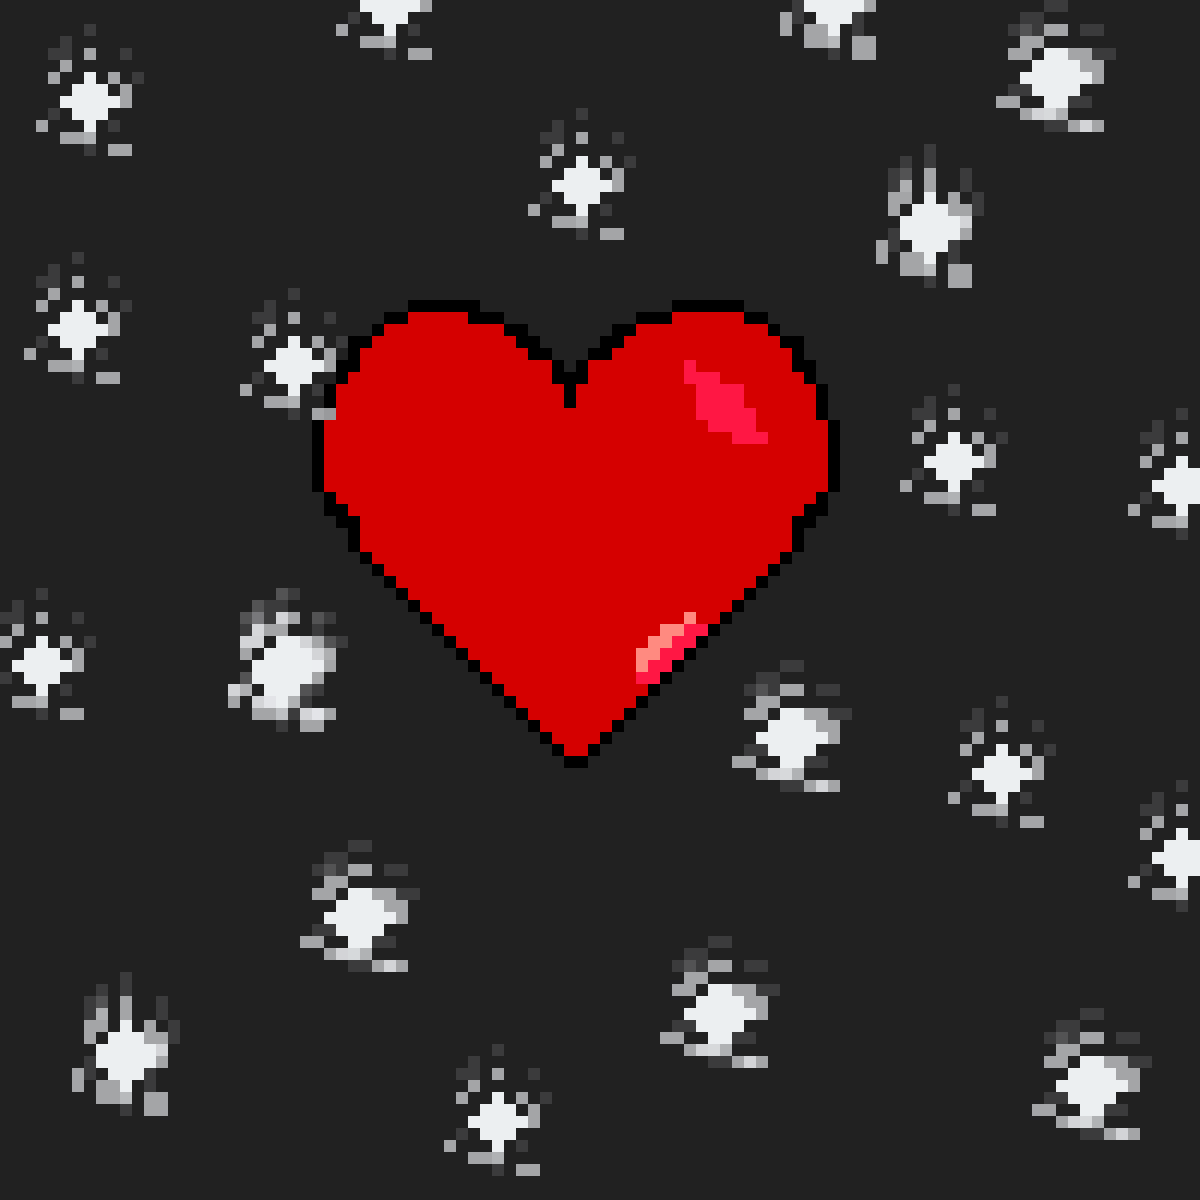 heart by piper1234